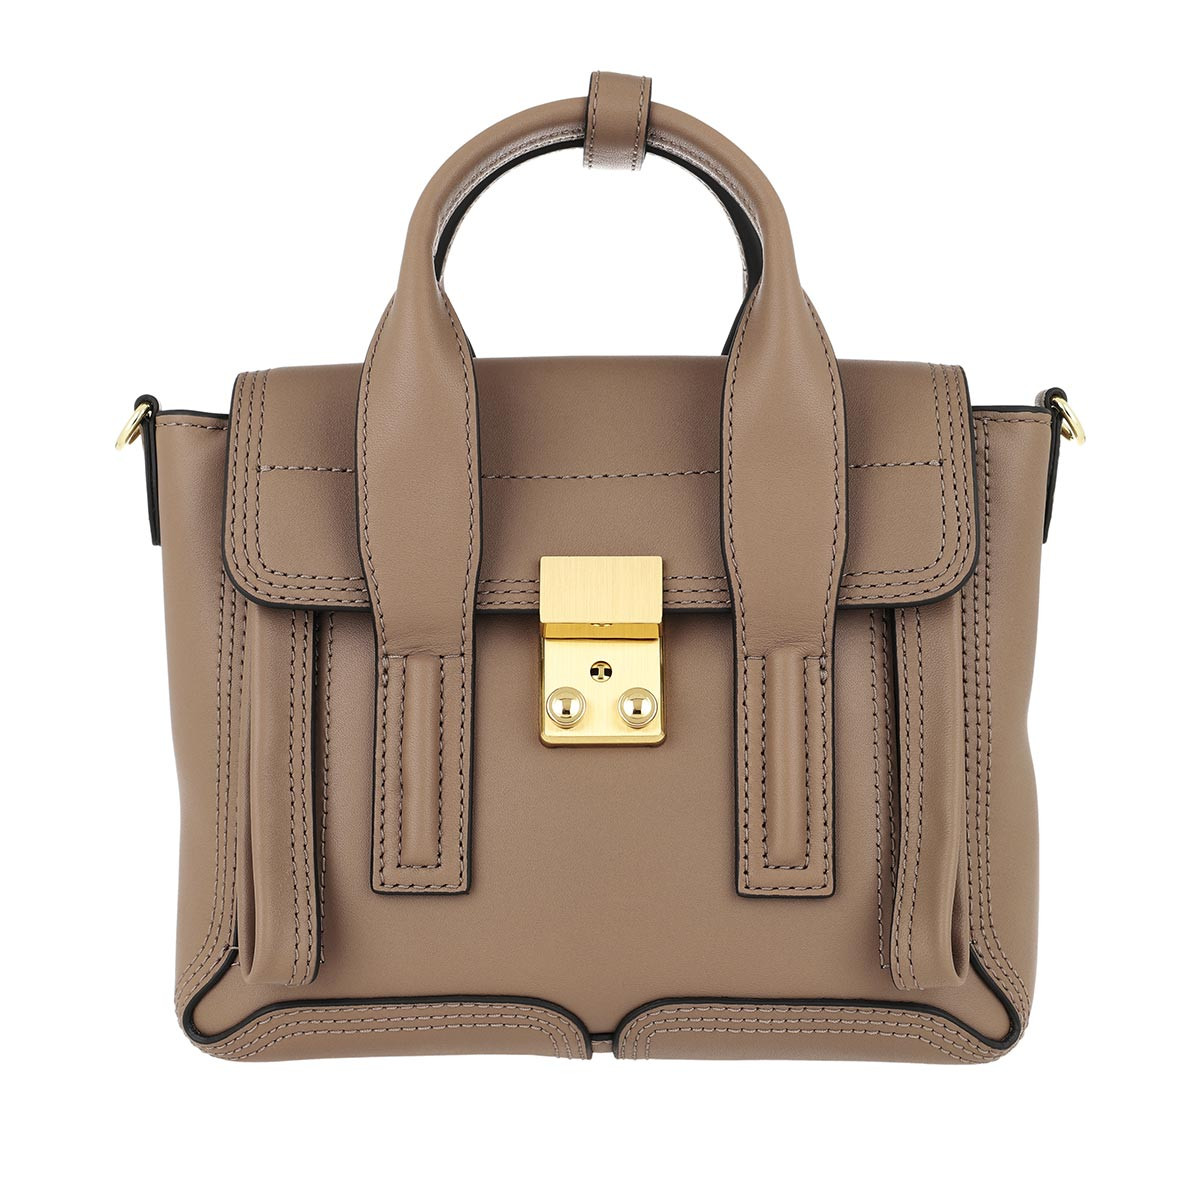 3.1 Phillip Lim Satchel Bag - Pashli Mini Satchel Coffee - in braun - für Damen